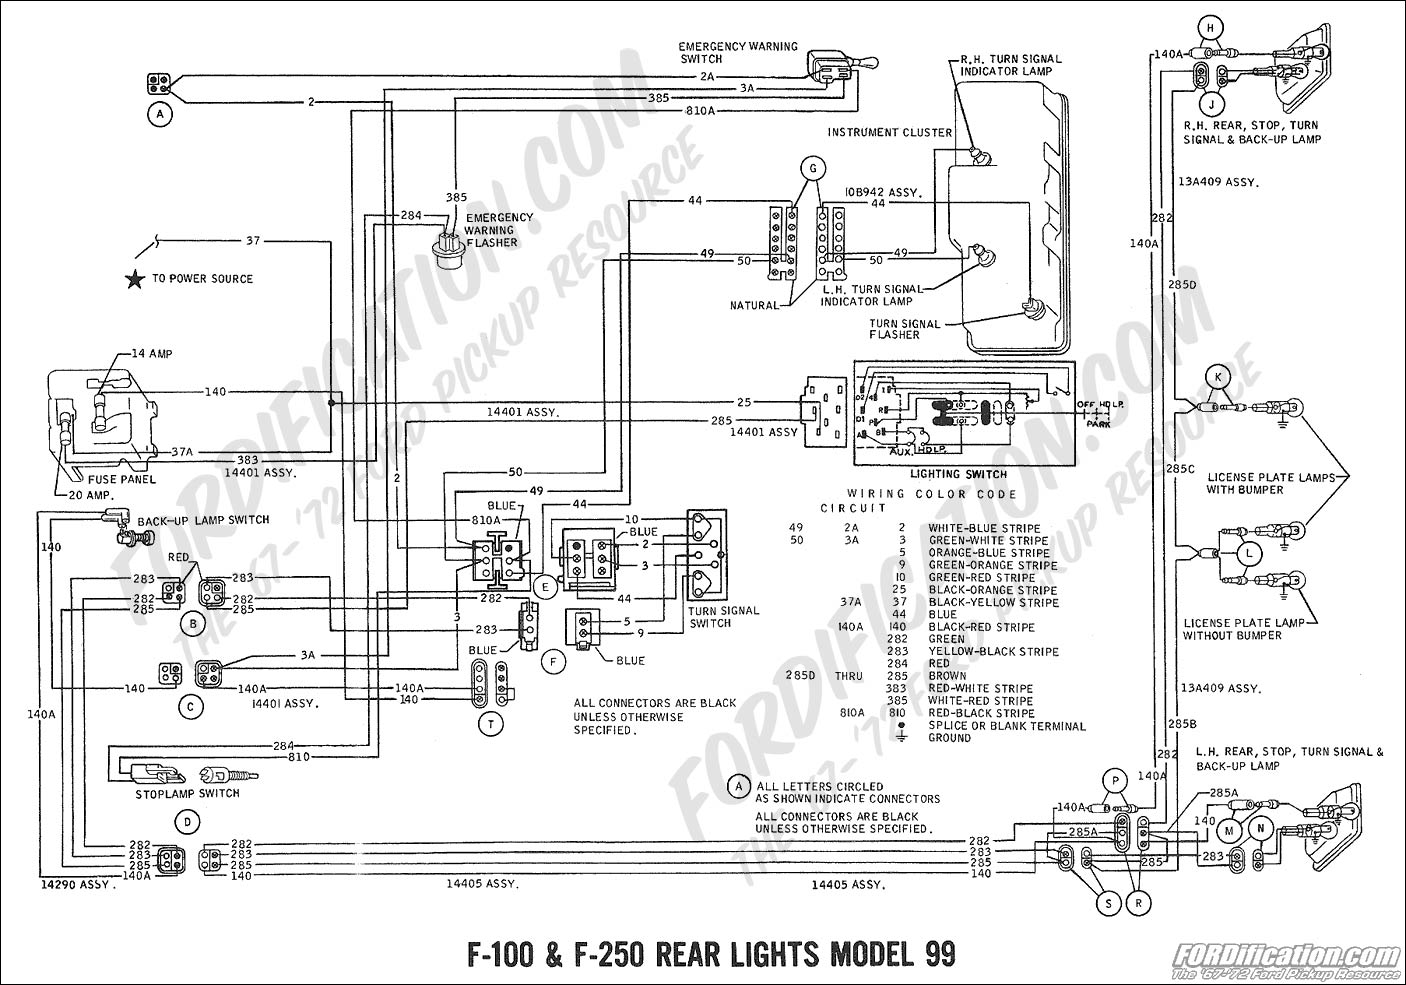 Mustang Tail Light Wiring Diagram